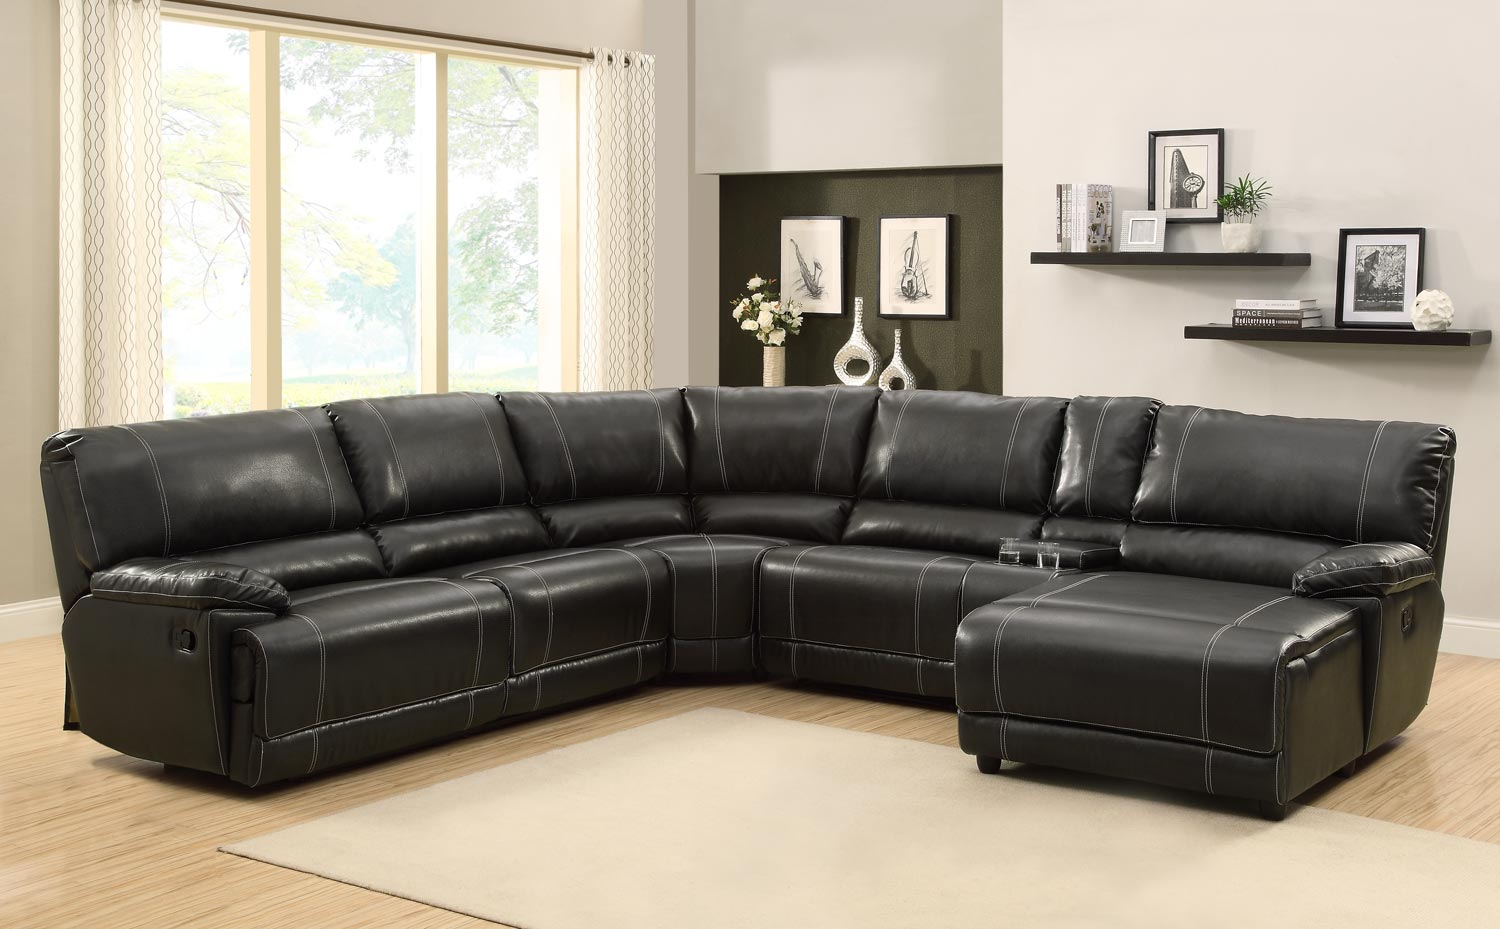 Homelegance Cale Sectional Sofa Set Black Bonded